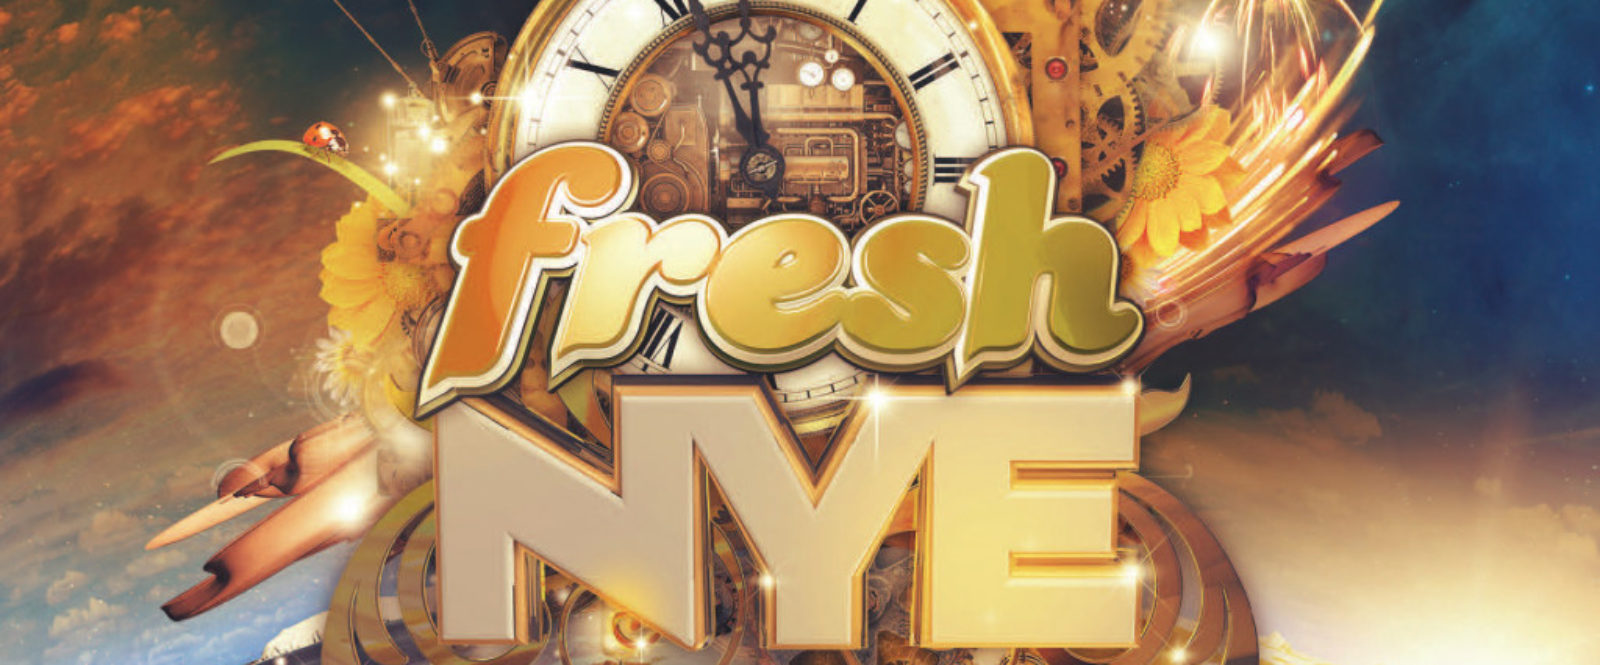 Fresh NYE Hotels almost sold out!